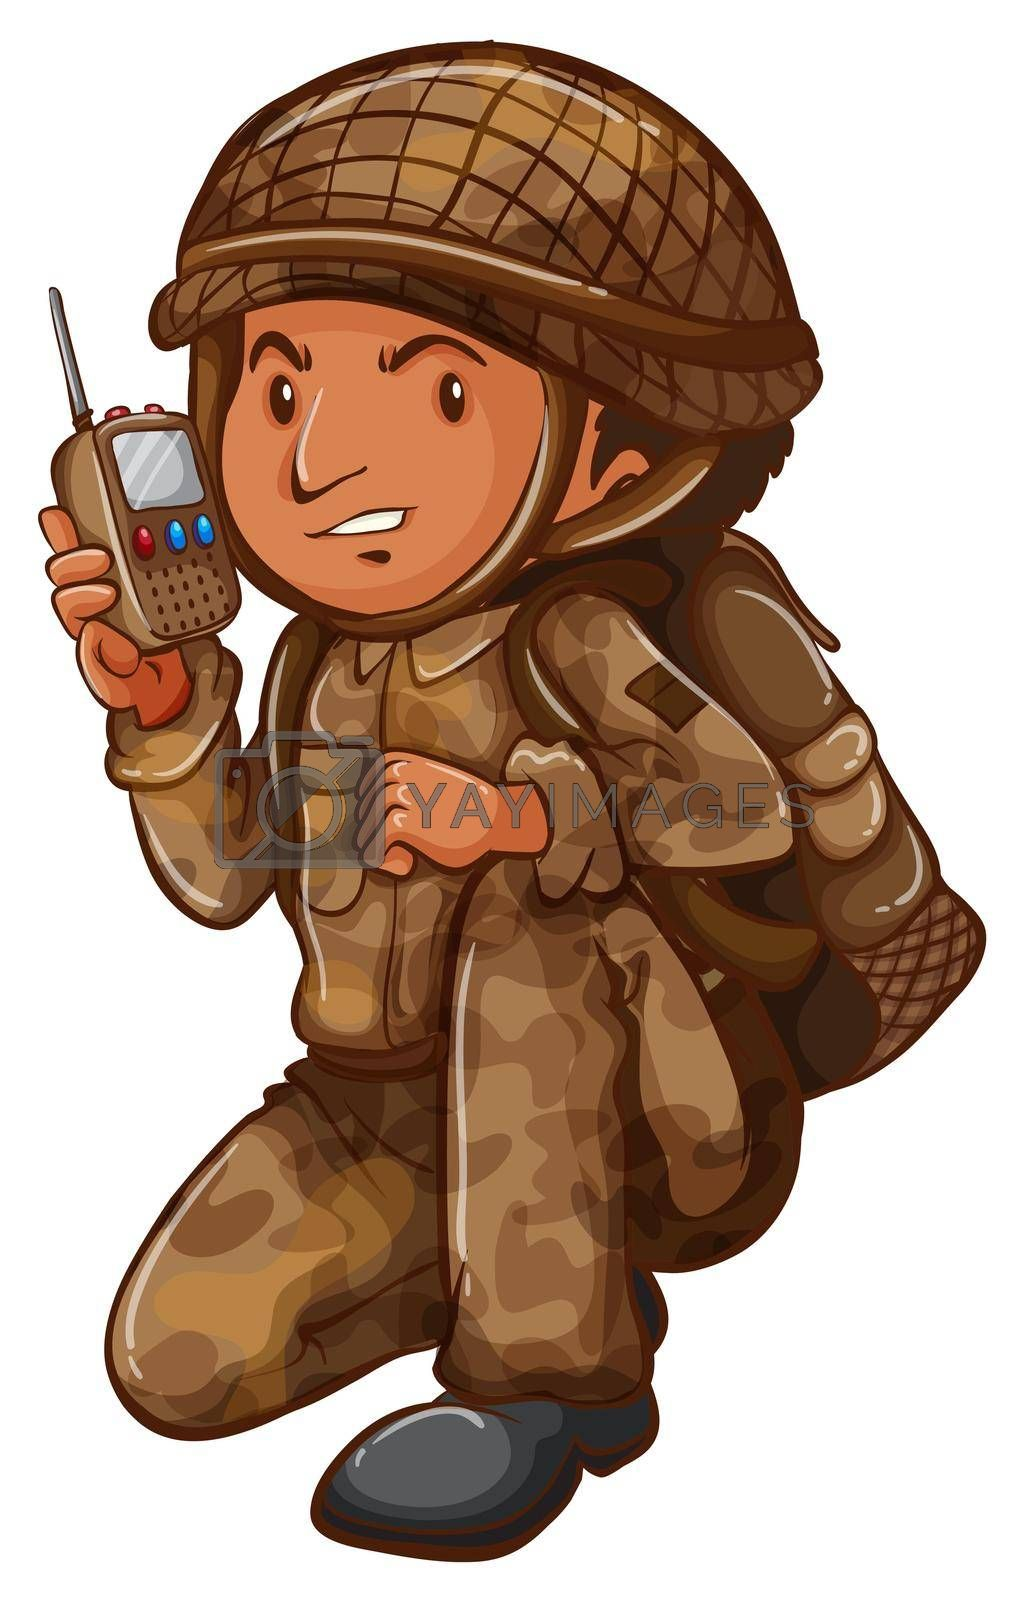 Illustration of a soldier with a communication tool on a white background